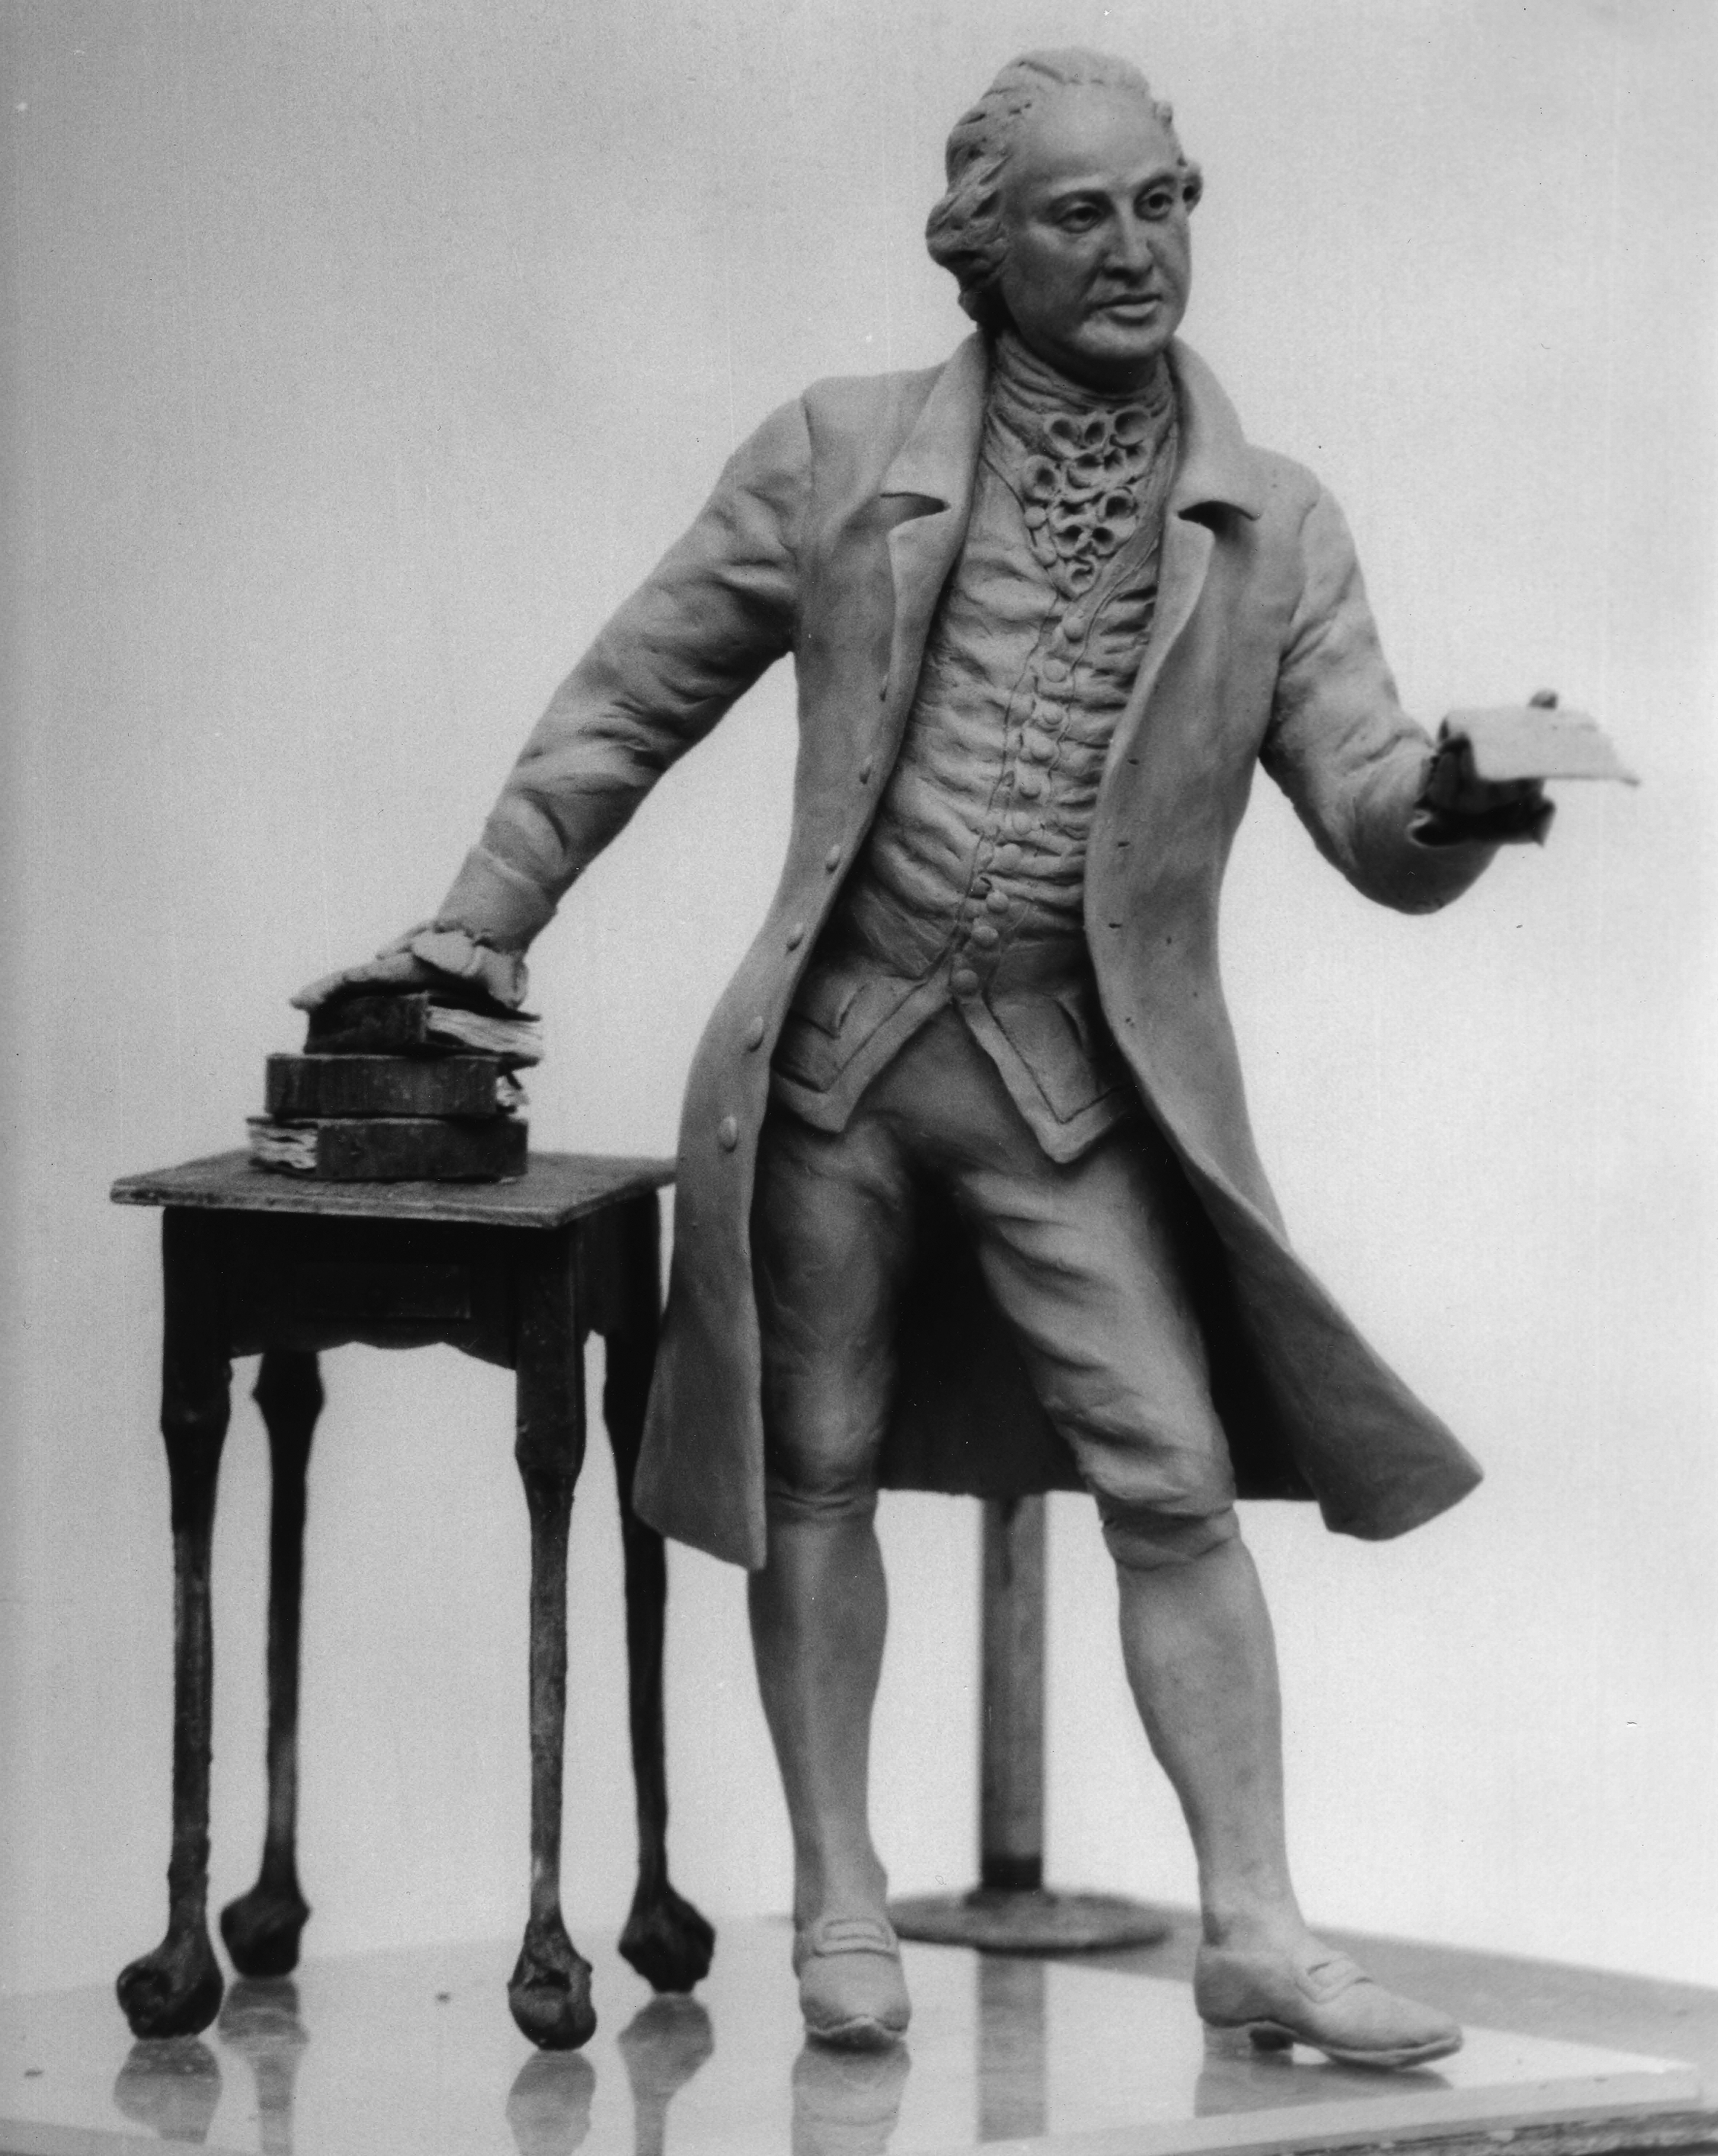 Clay maquette [model] for George Mason bronze sculpture by sculptor Wendy Ross, 1992